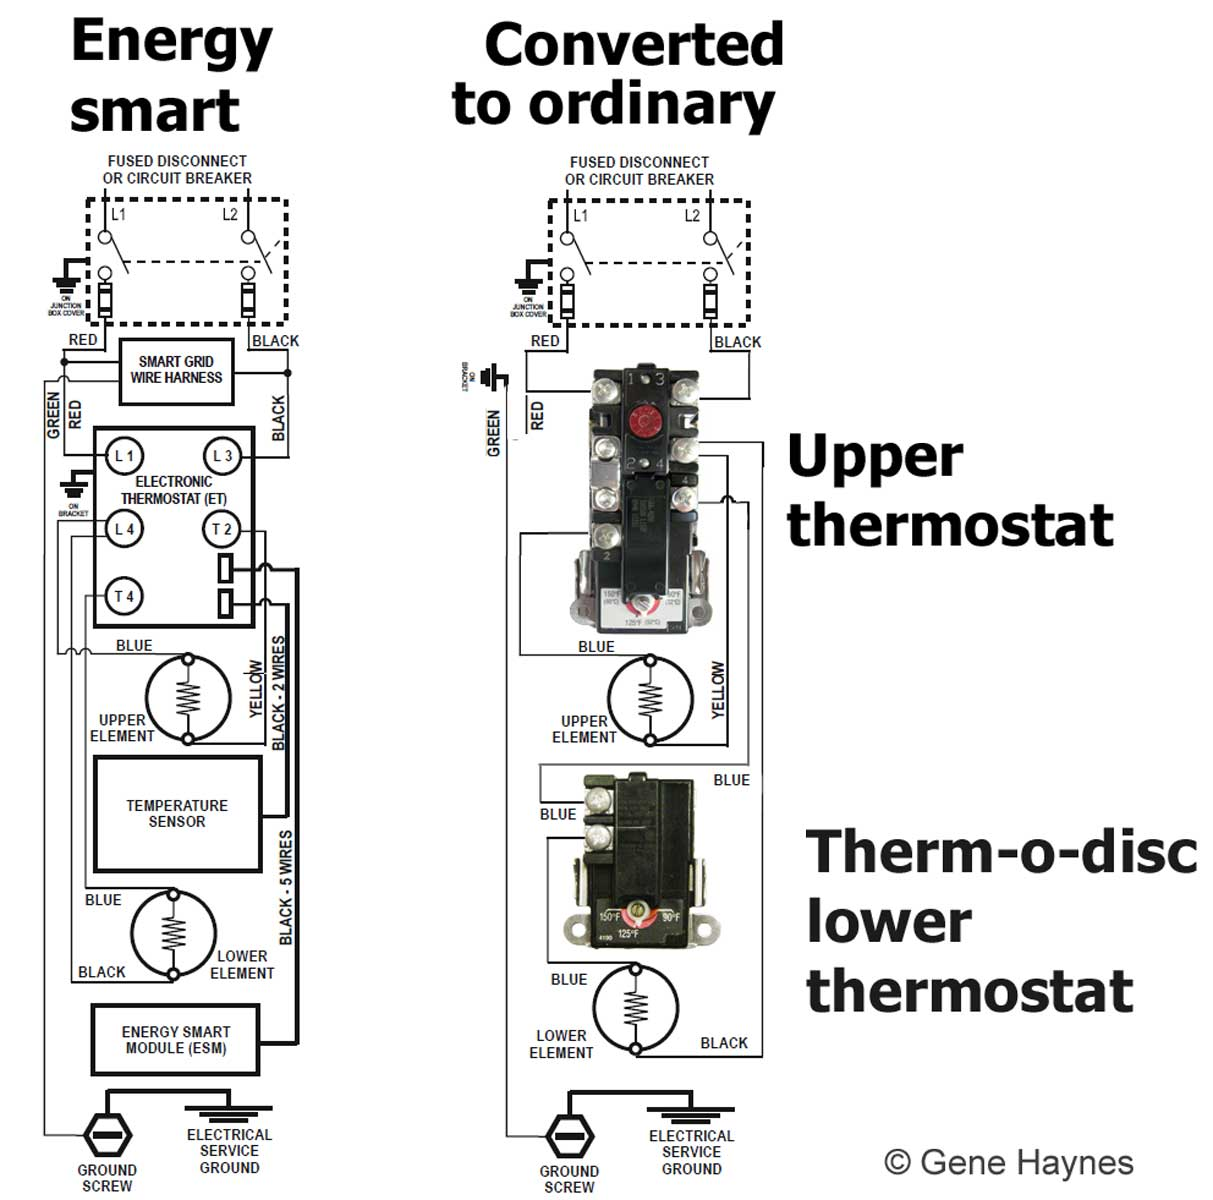 How to convert energy smart water heater to ordinary water heater notice the upper thermostats on each diagram are mirror images the top two screws located above the reset button are the same l1 l3 on both electronic asfbconference2016 Gallery